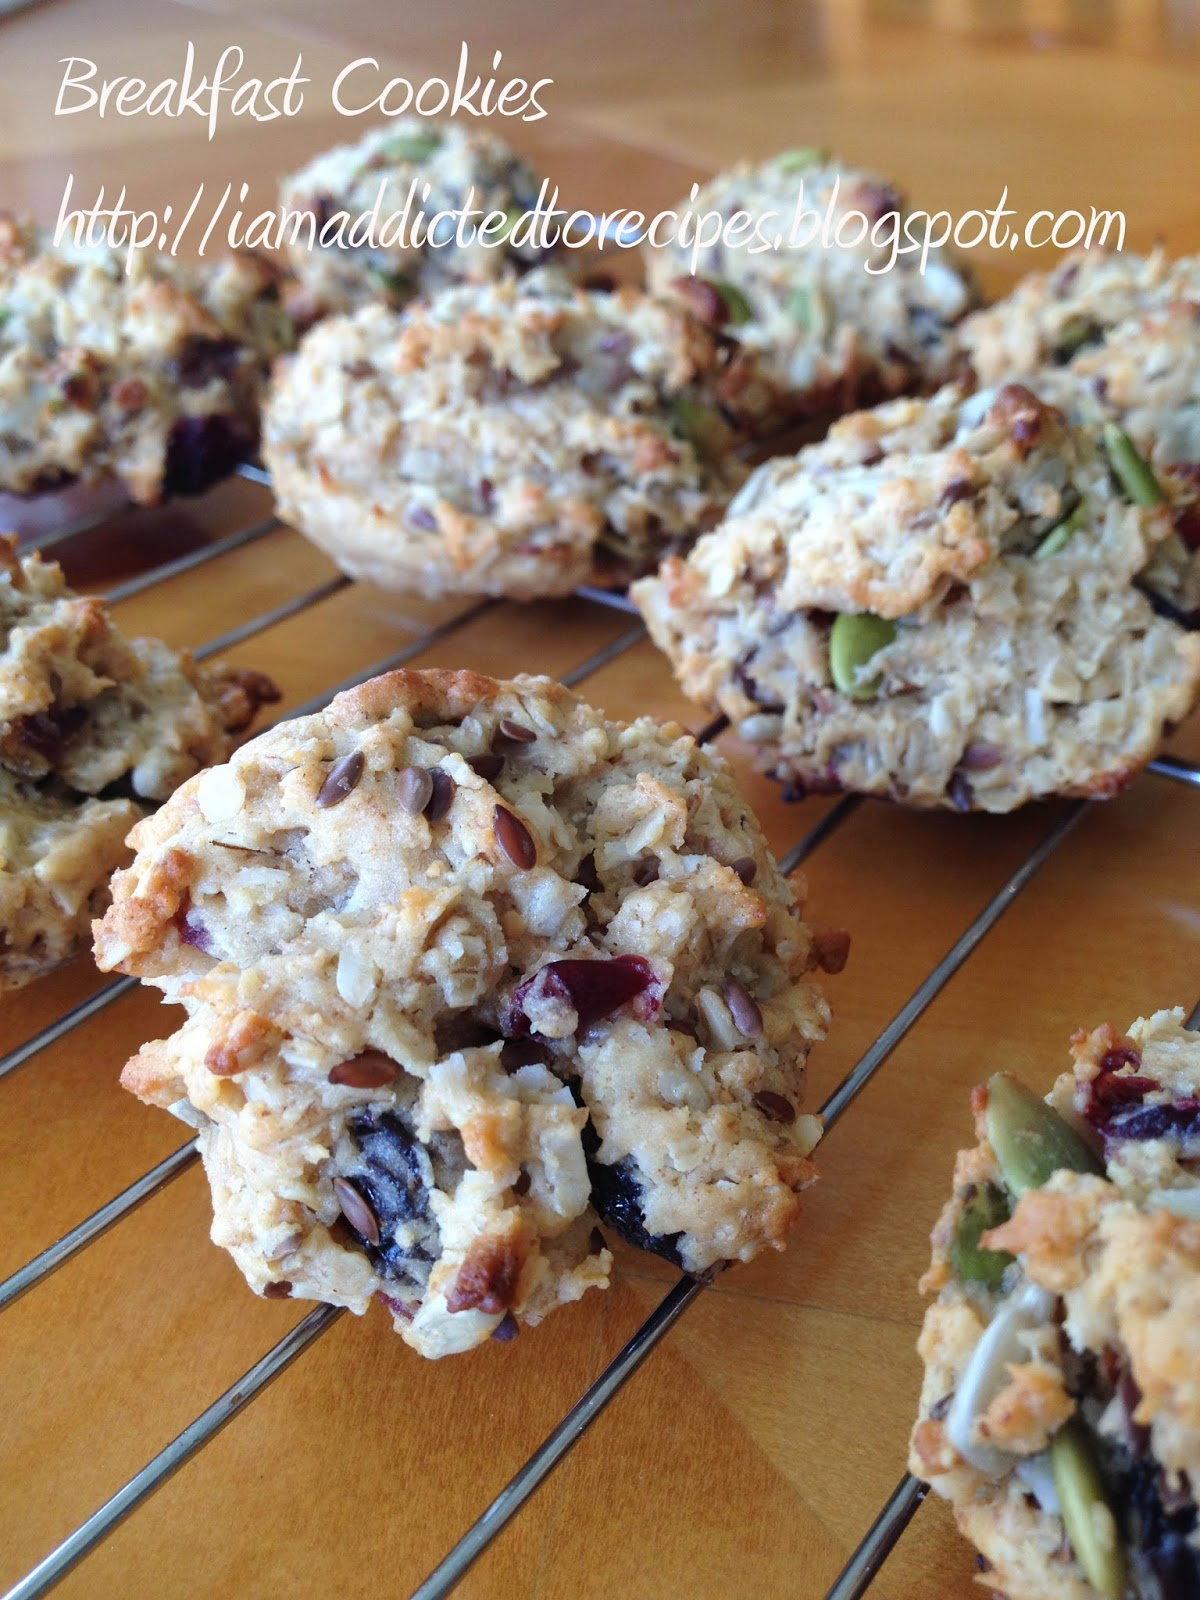 Breakfast Cookies | Addicted to Recipes